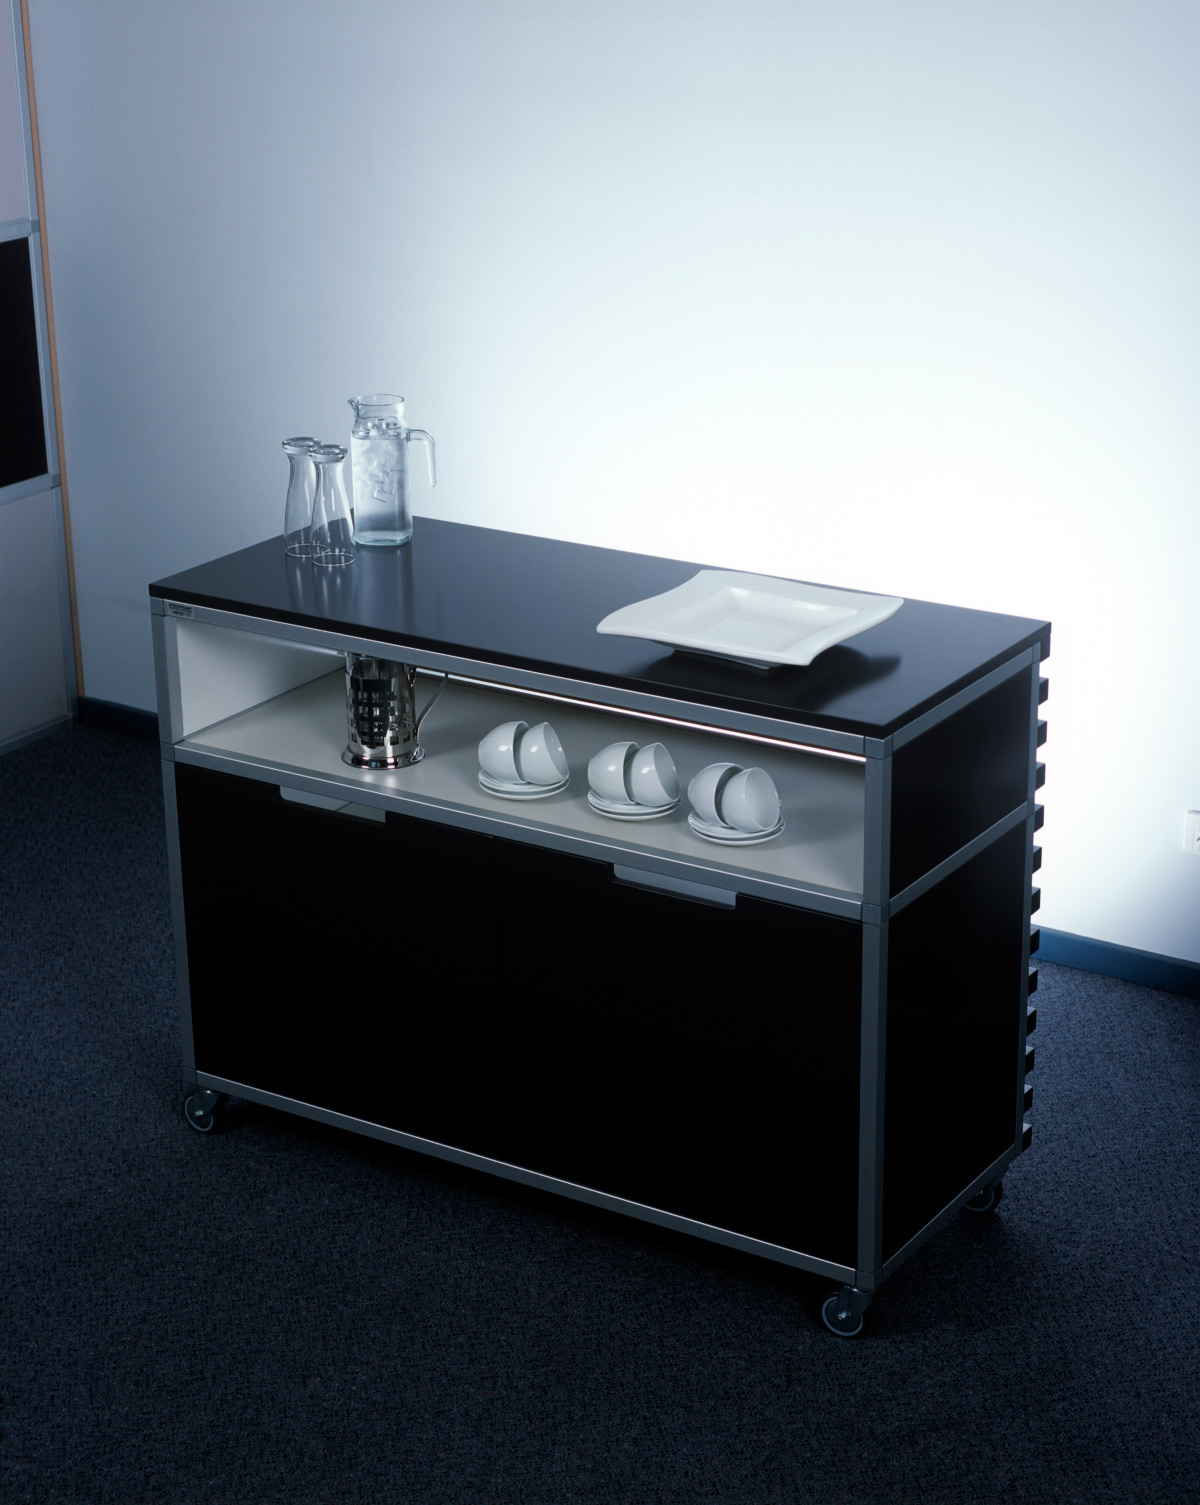 Speedframe modular shelving systems spacepac industries - Mobile credenza ...